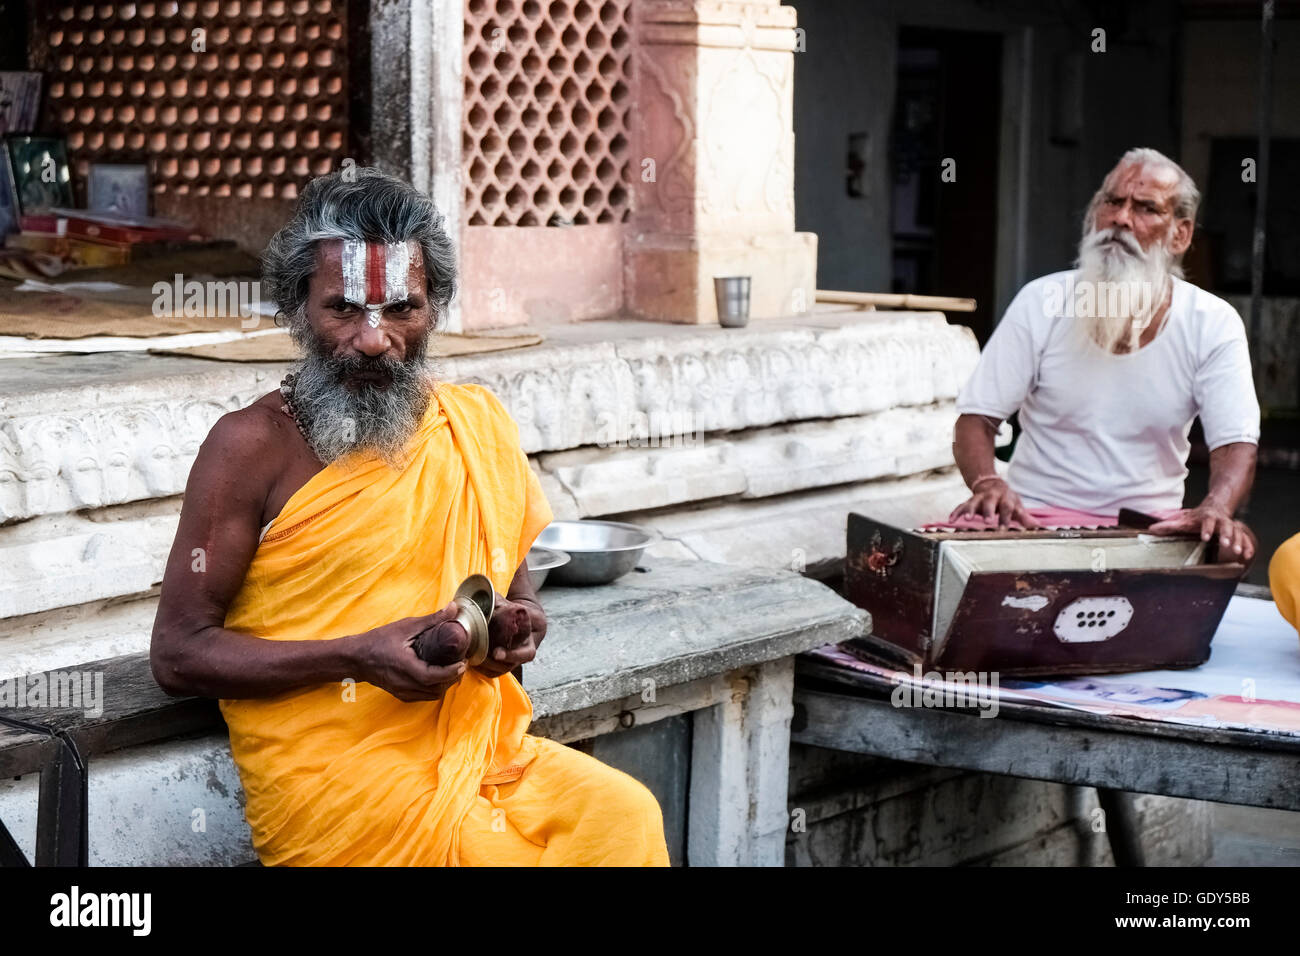 A sadhu (ascetic or holy man) and a musician at a temple in Jaipur, Rajasthan, India. - Stock Image